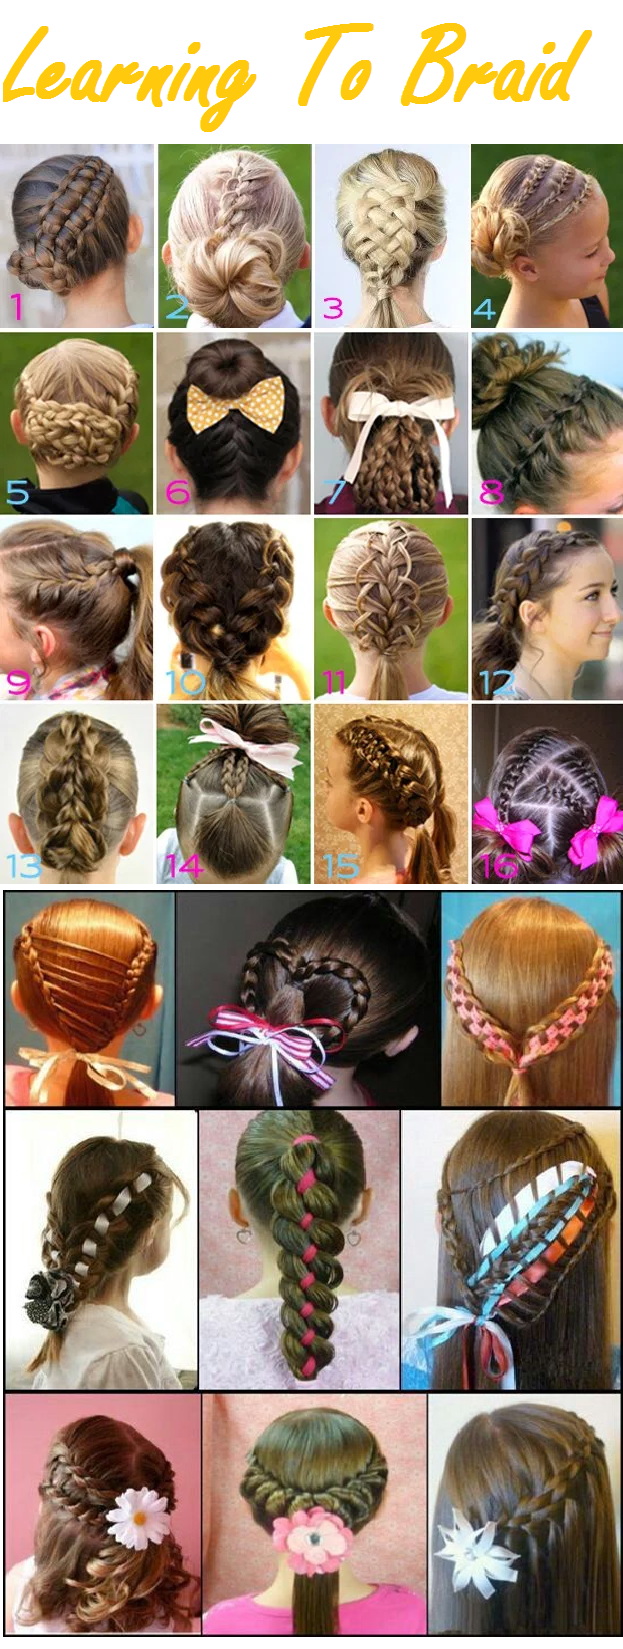 learning to braid